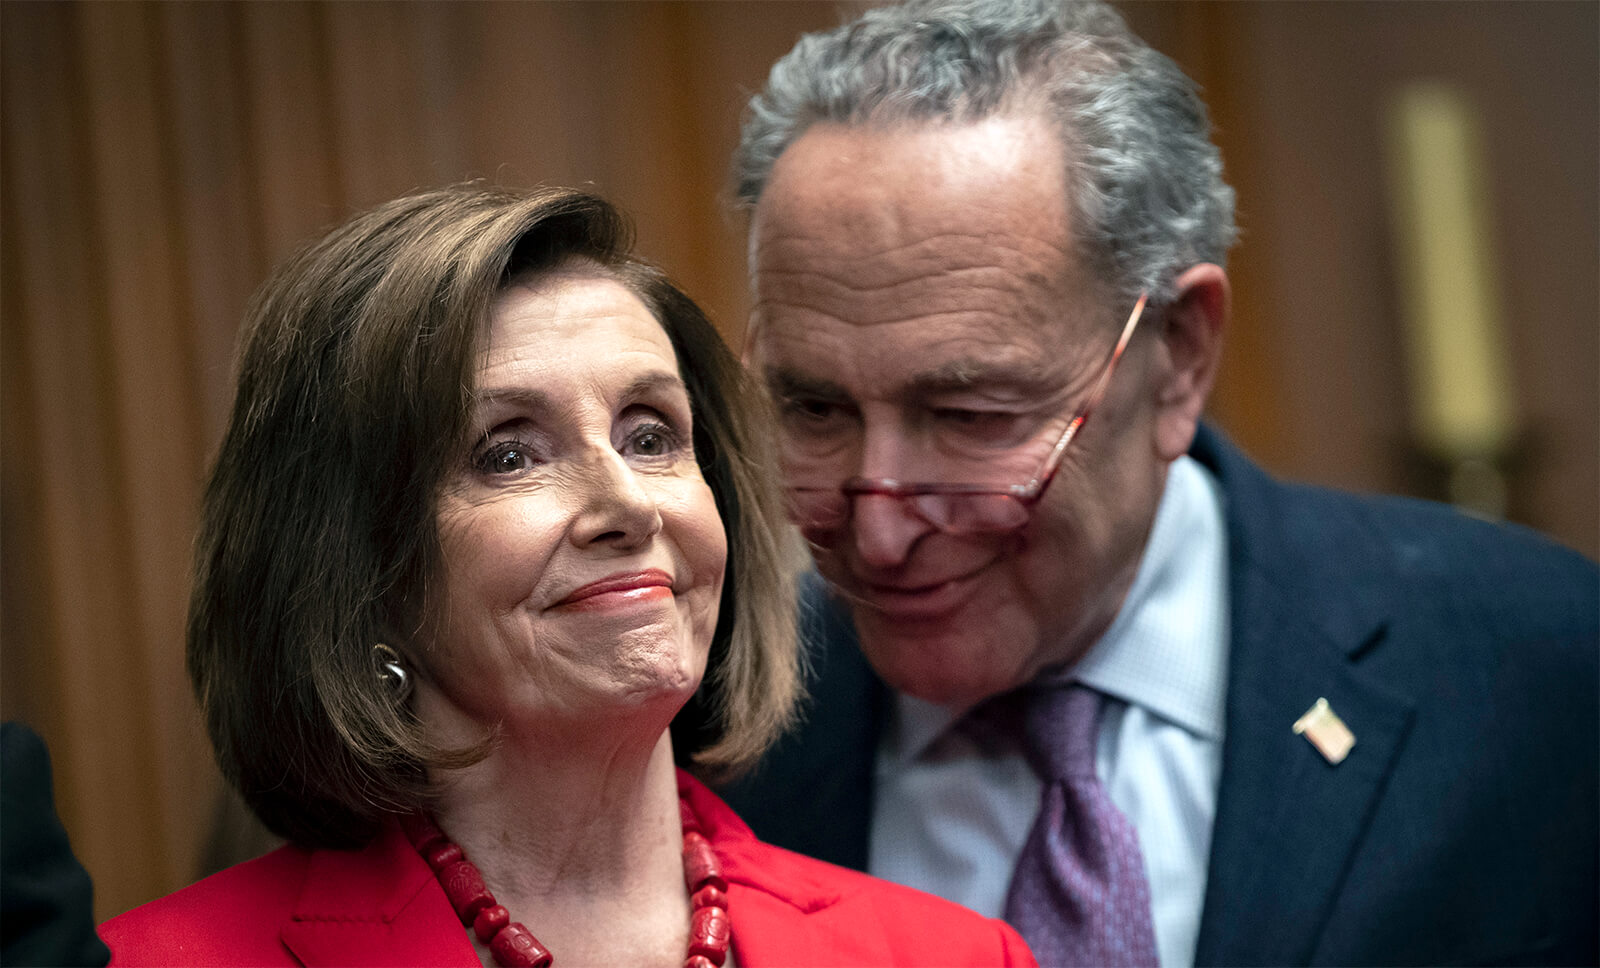 Pelosi, Schumer Join AFSCME Members to Push Congress for State, Local Aid |  American Federation of State, County and Municipal Employees (AFSCME)